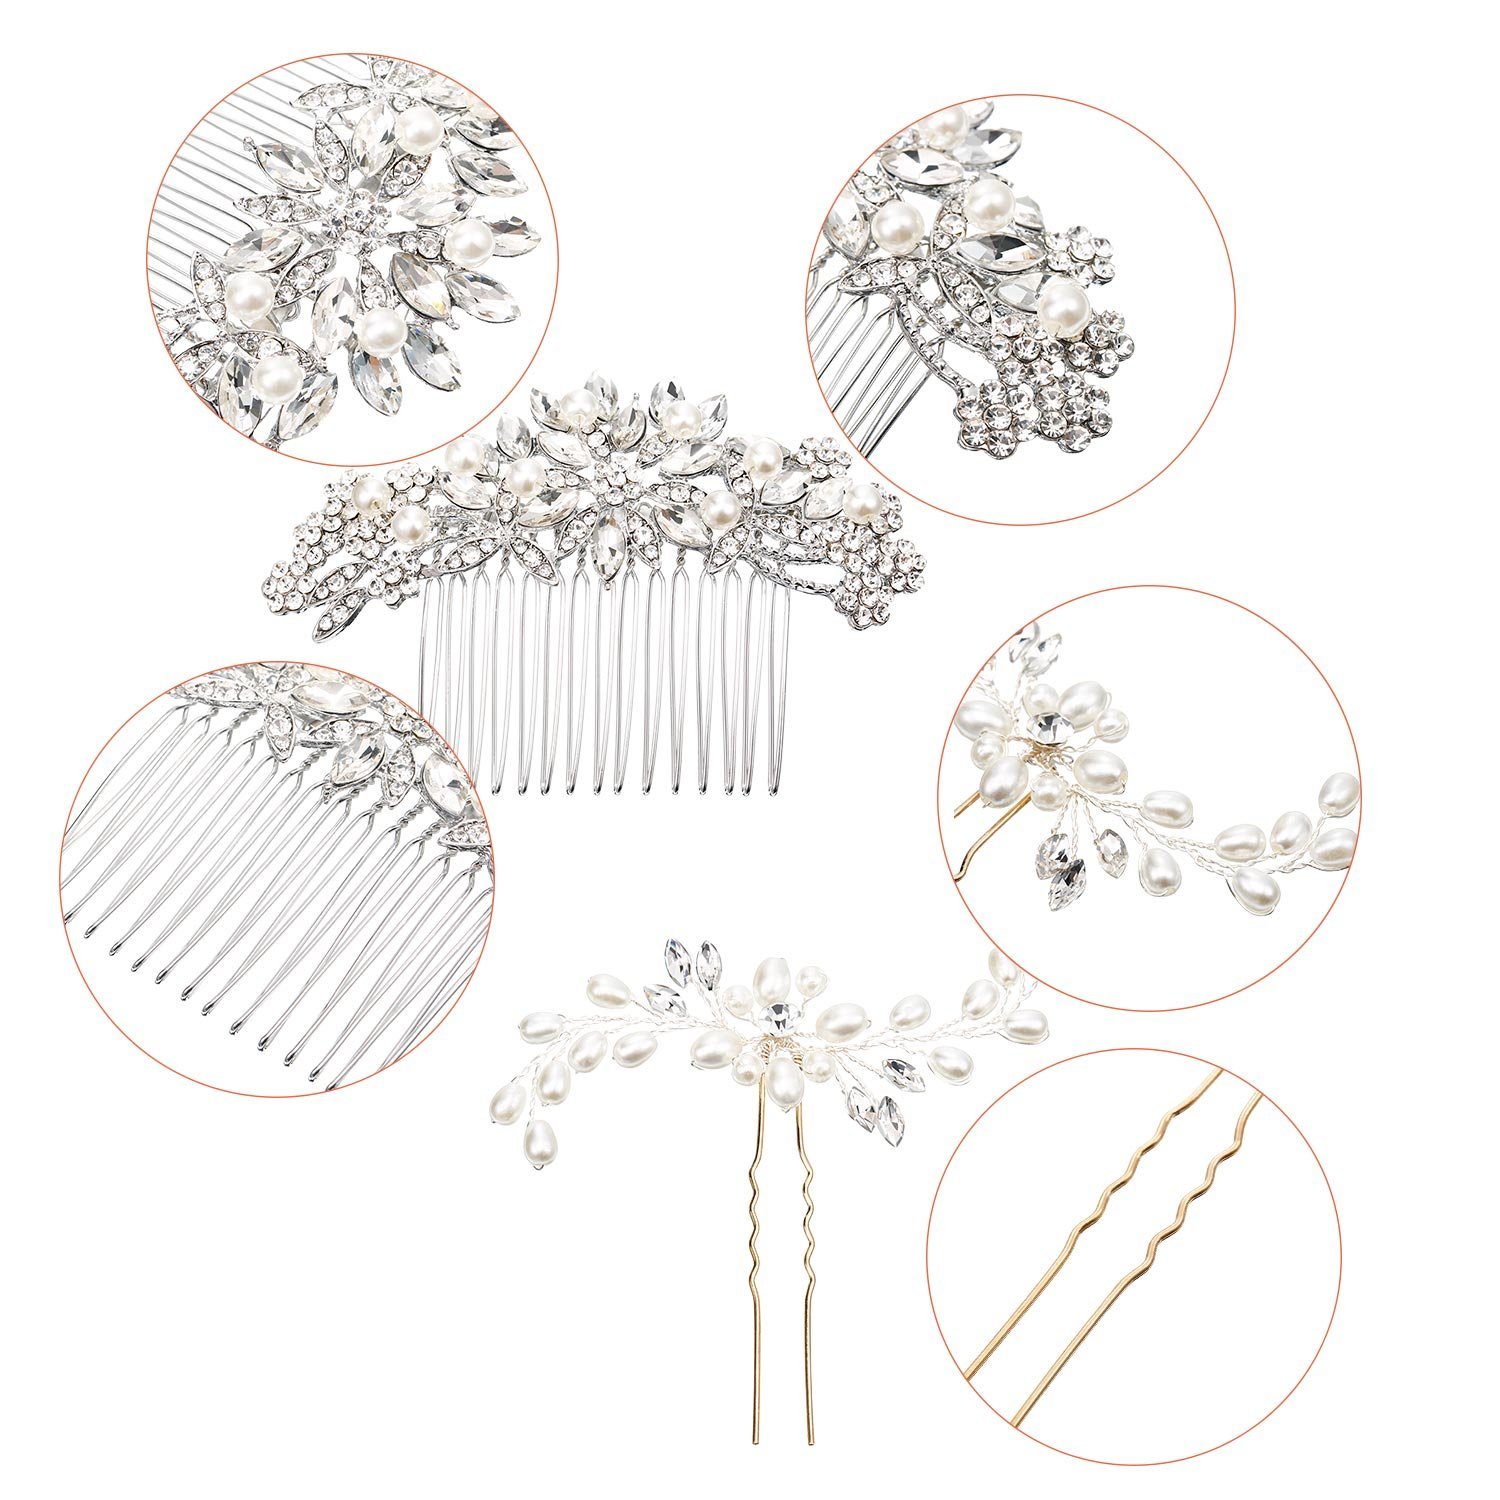 Gejoy 3 Pieces Elegant Wedding Crystal Hair Accessories, Leaves Flowers Hair Comb and 2 Pieces Rhinestone Bridal Hair Pins for Women, Bride or Bridesmaid by Gejoy (Image #3)